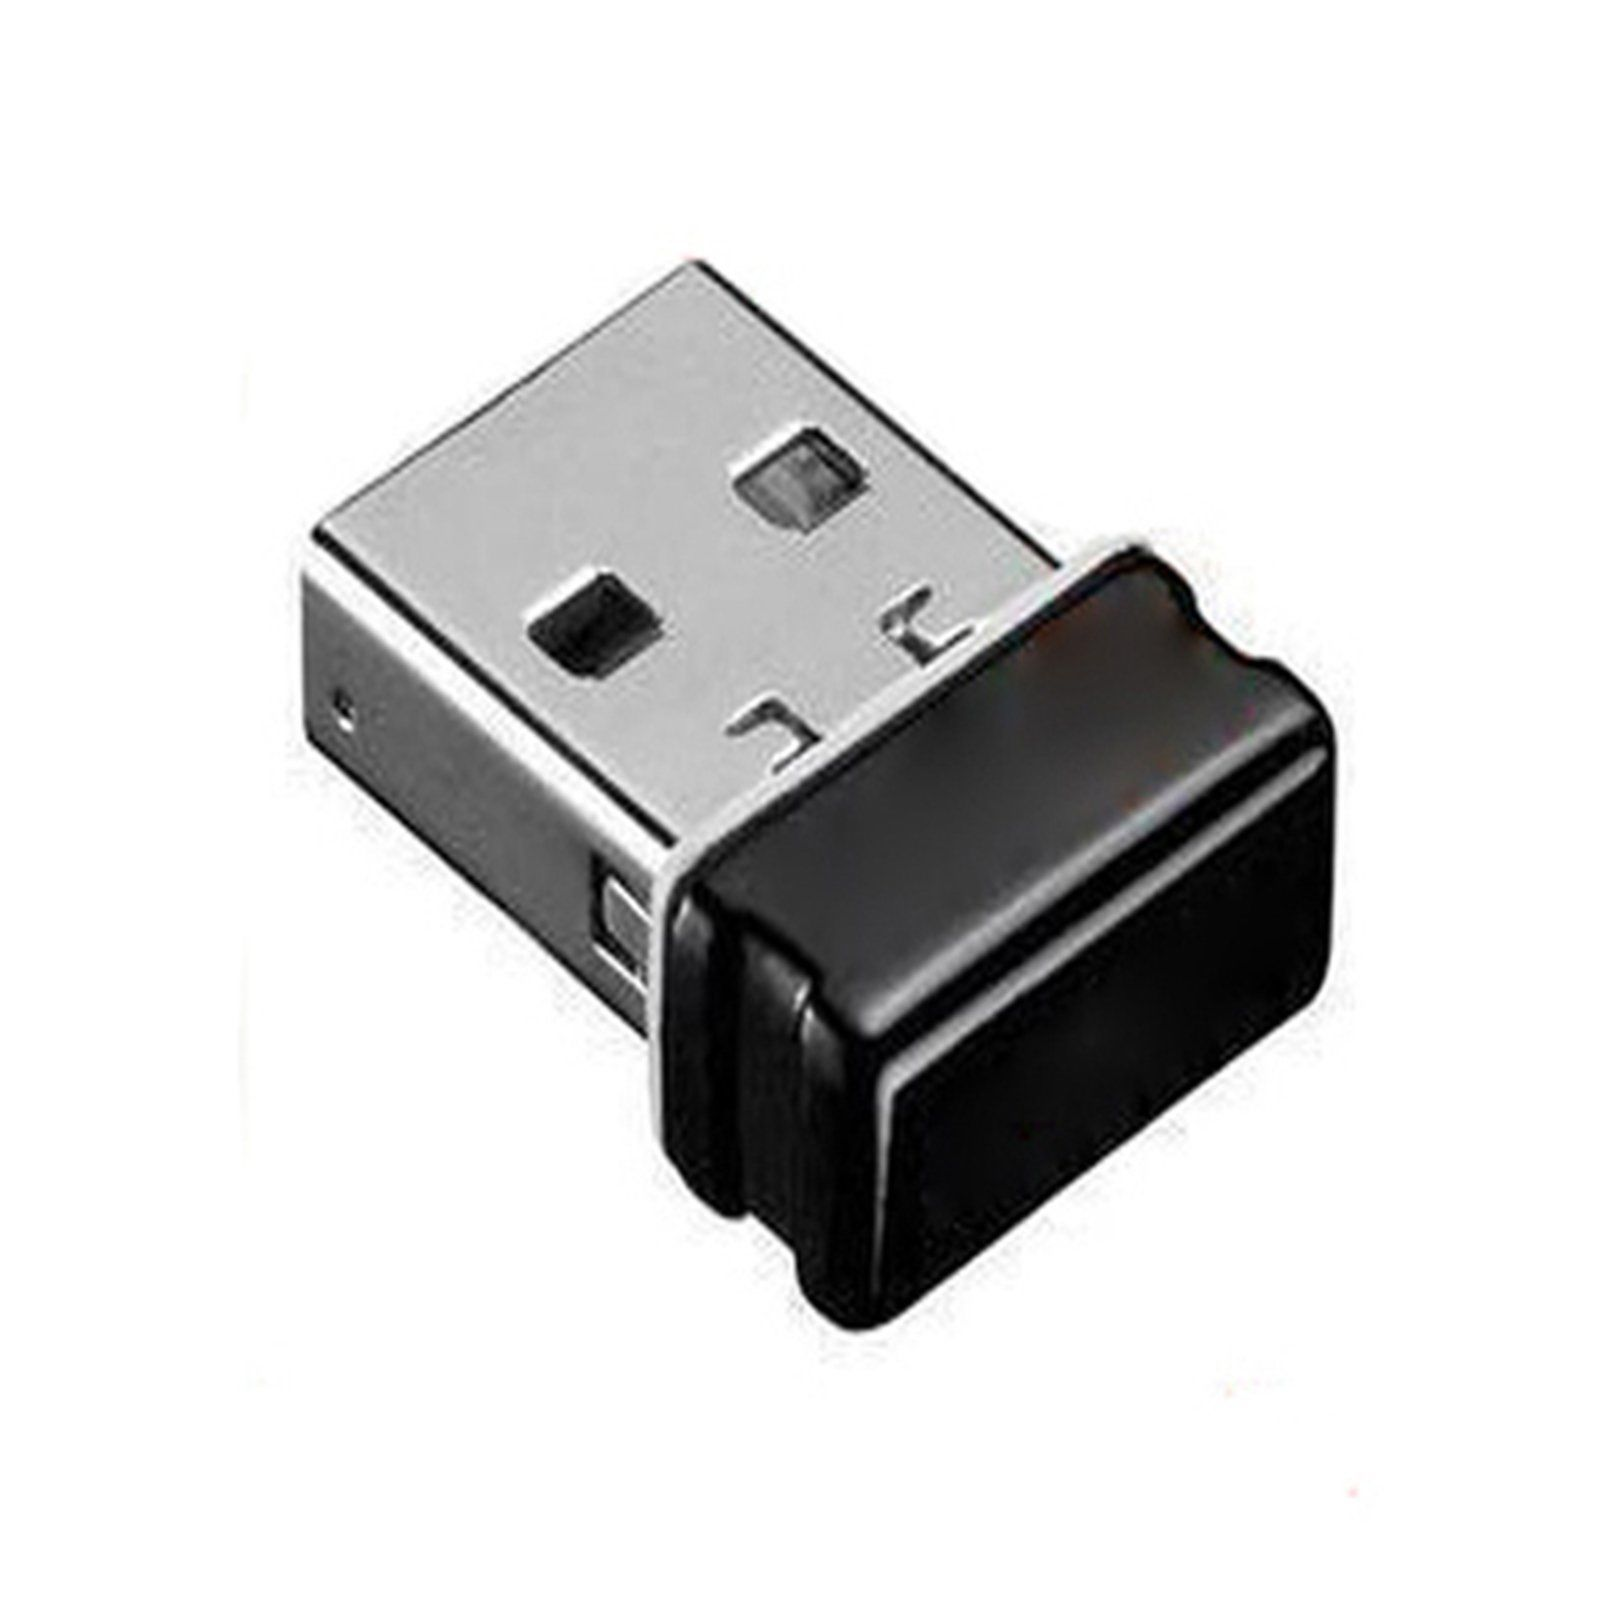 Logitech USB Replacement Receiver for